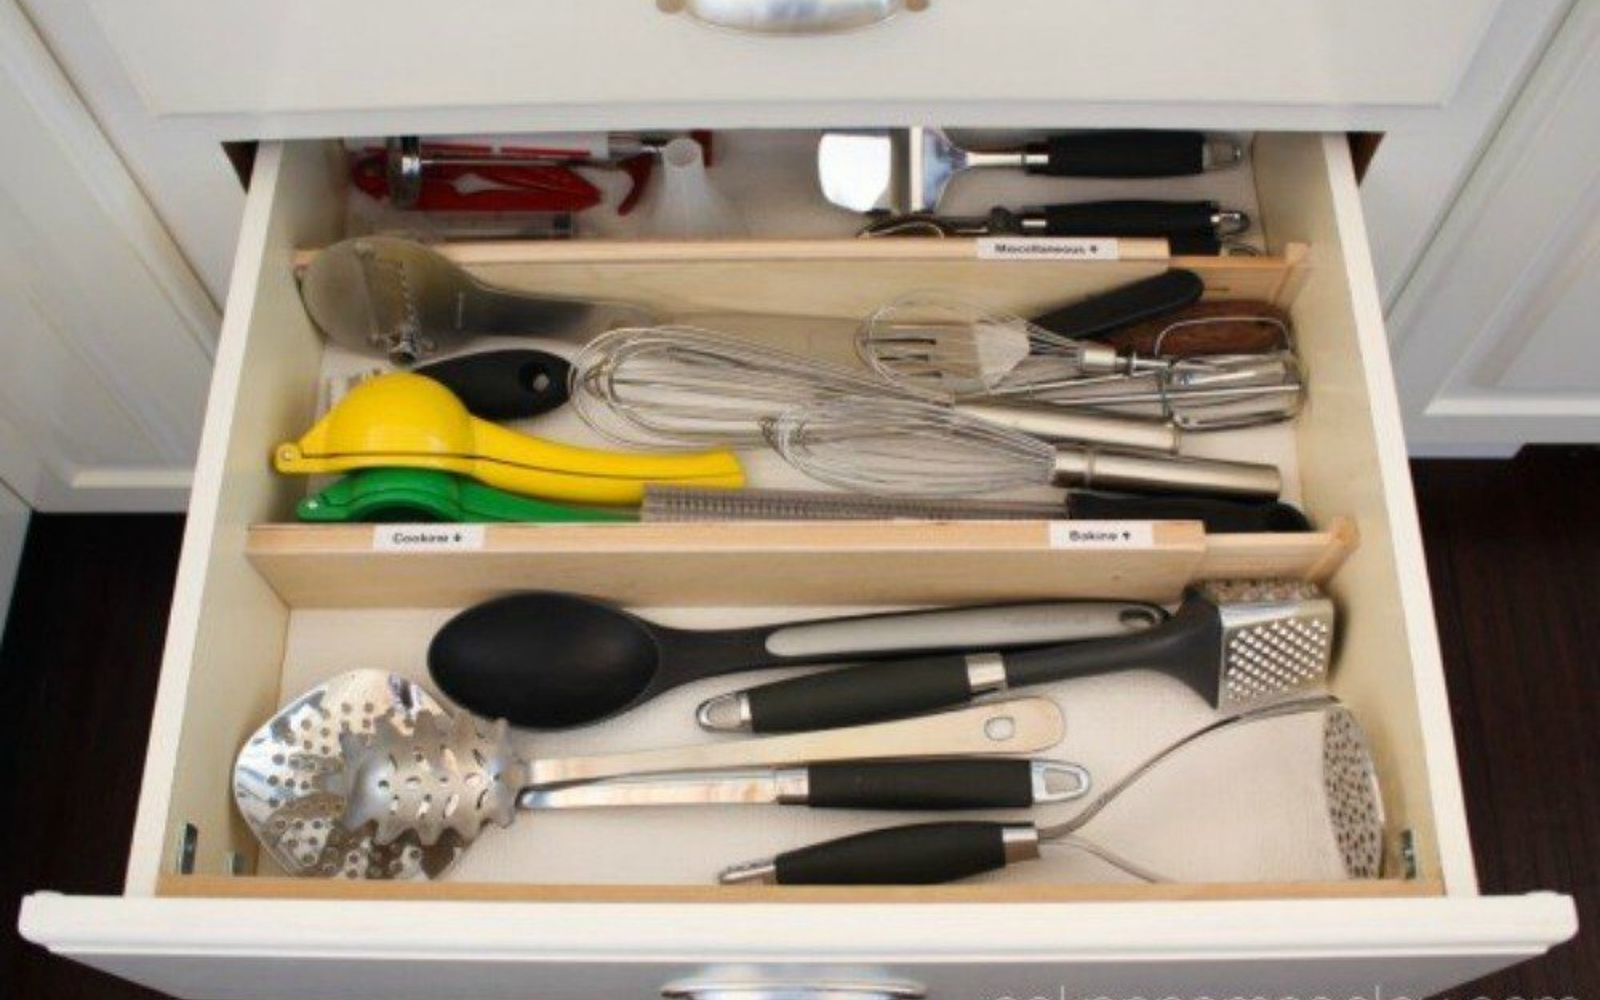 13 Storage Ideas That Will Instantly Declutter Your Kitchen Drawers : Hometalk